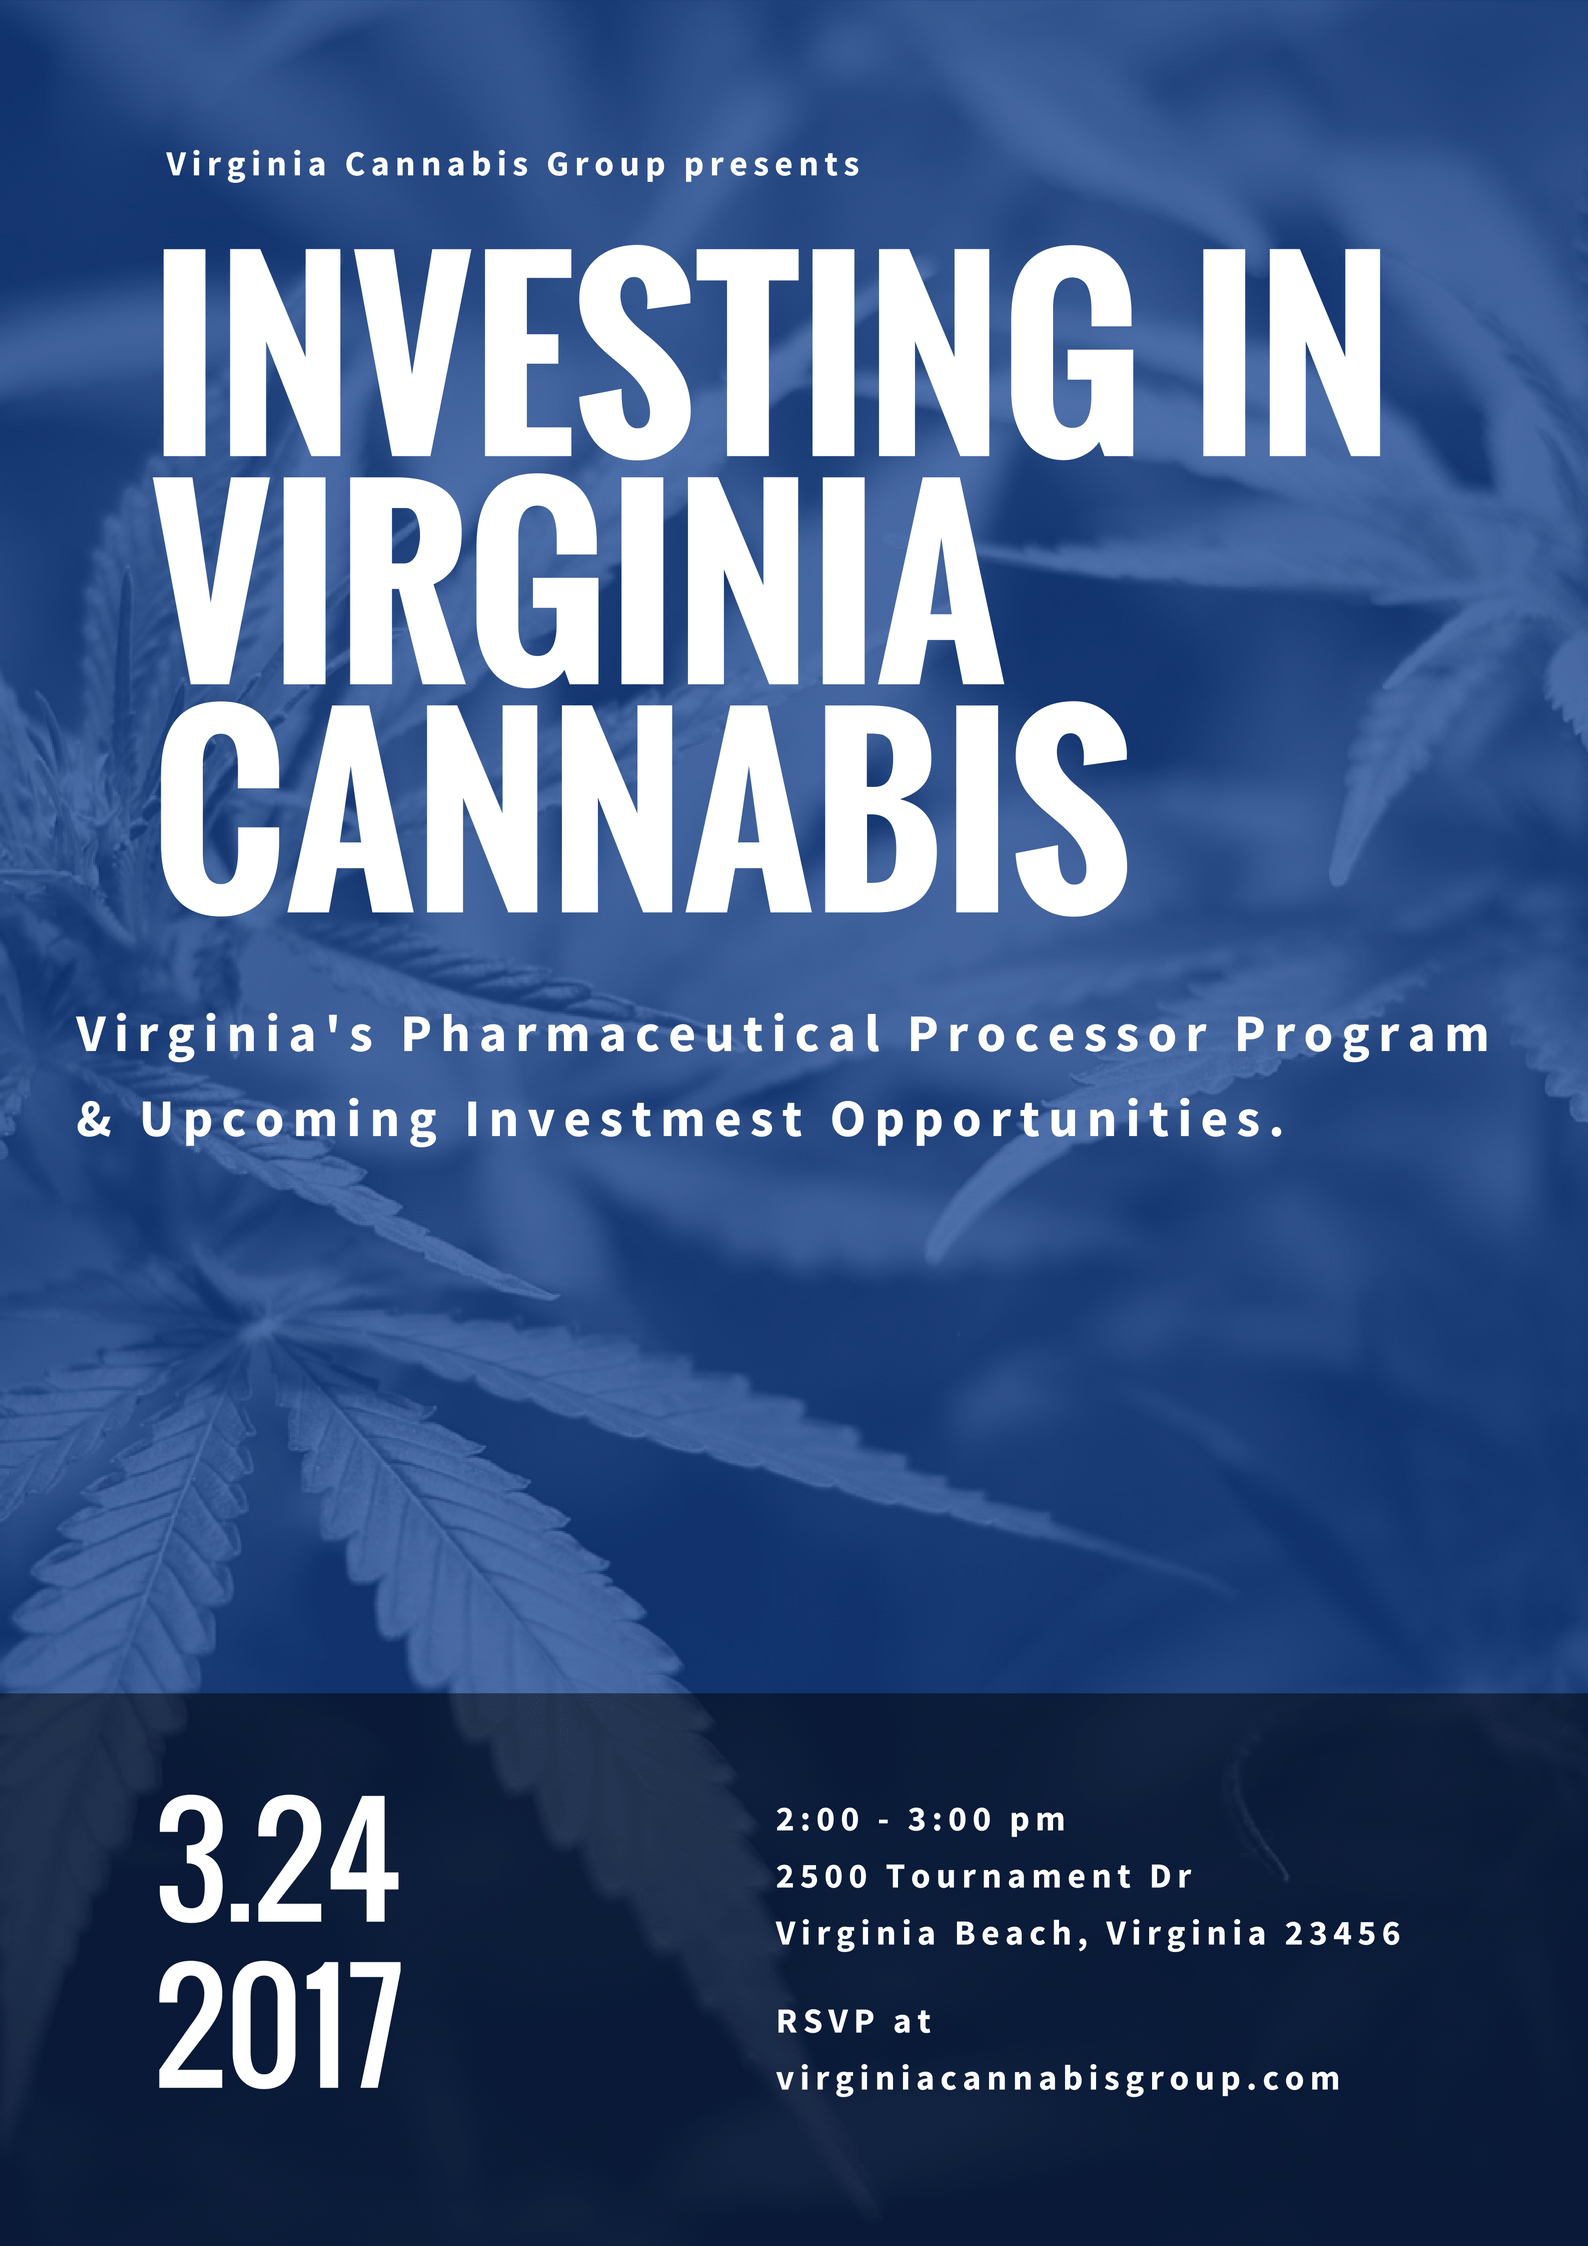 Investing in Virginia Cannabis